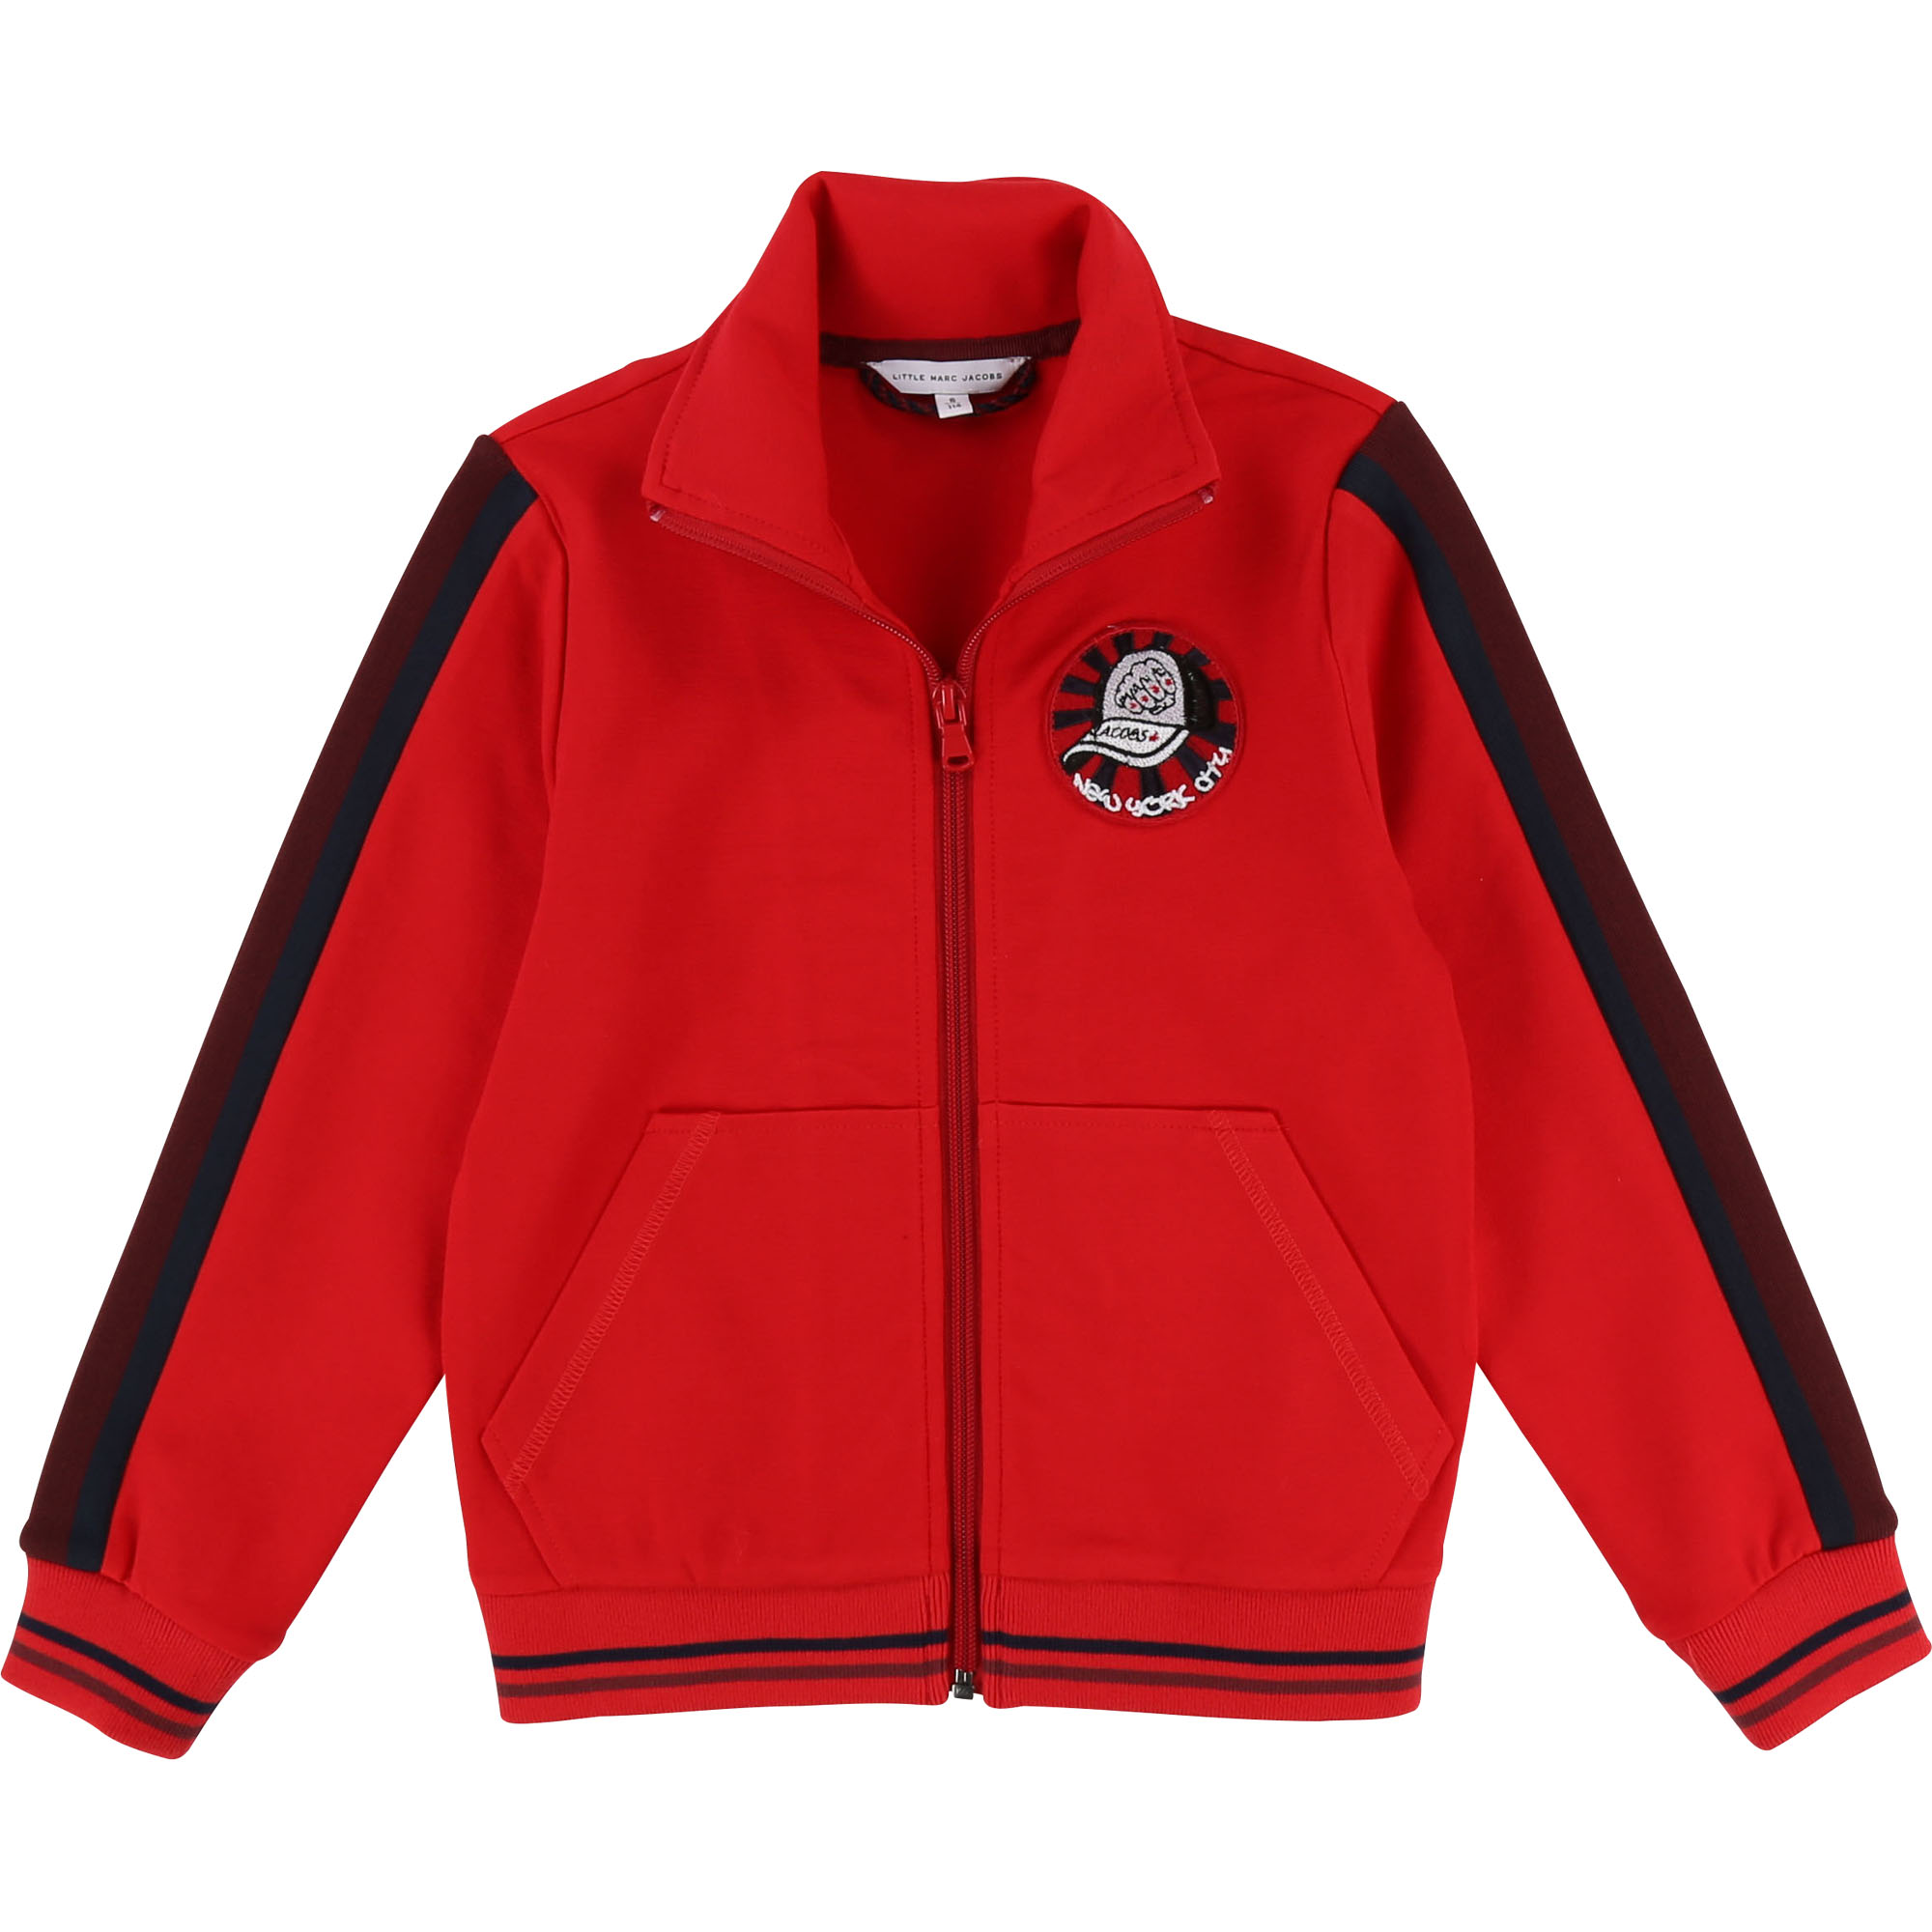 Milano jogging cardigan THE MARC JACOBS for BOY